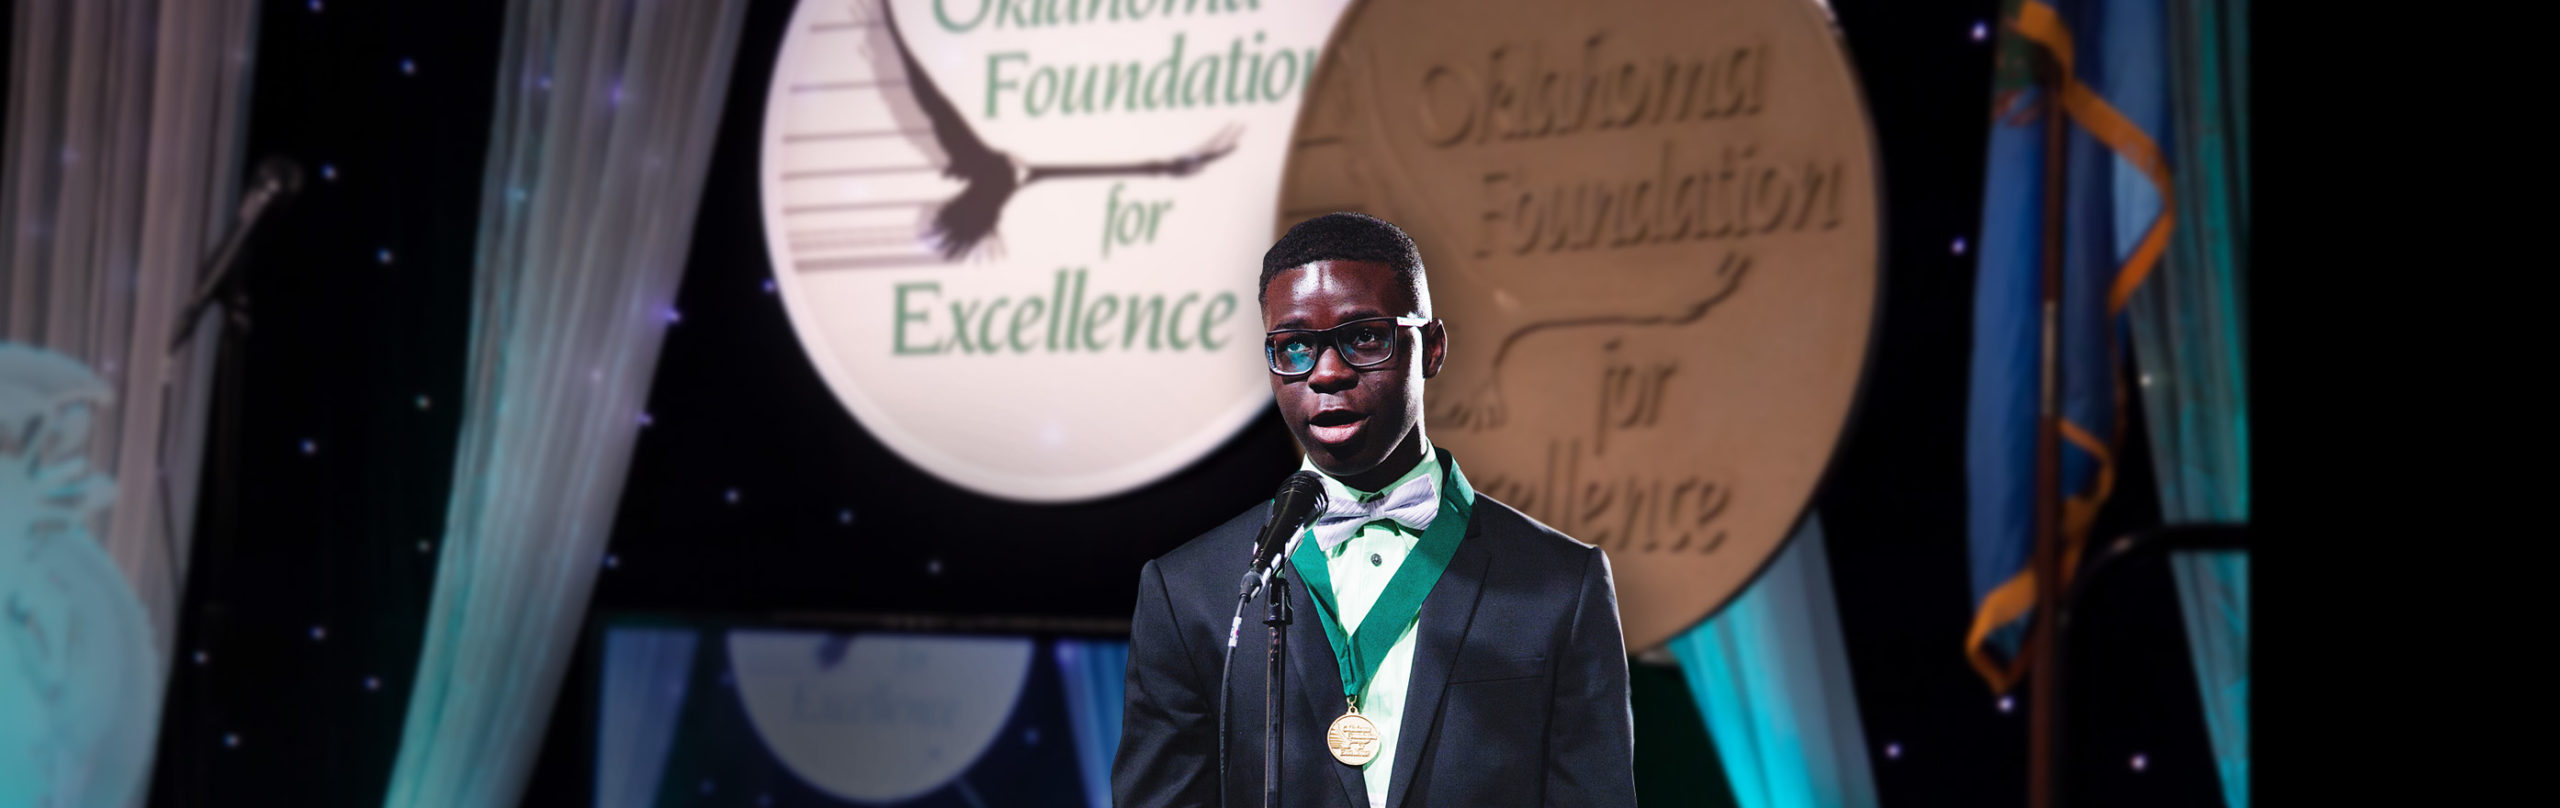 Oklahoma Foundation for Excellence Seeking Nominations for 2021 Academic All-State Scholars